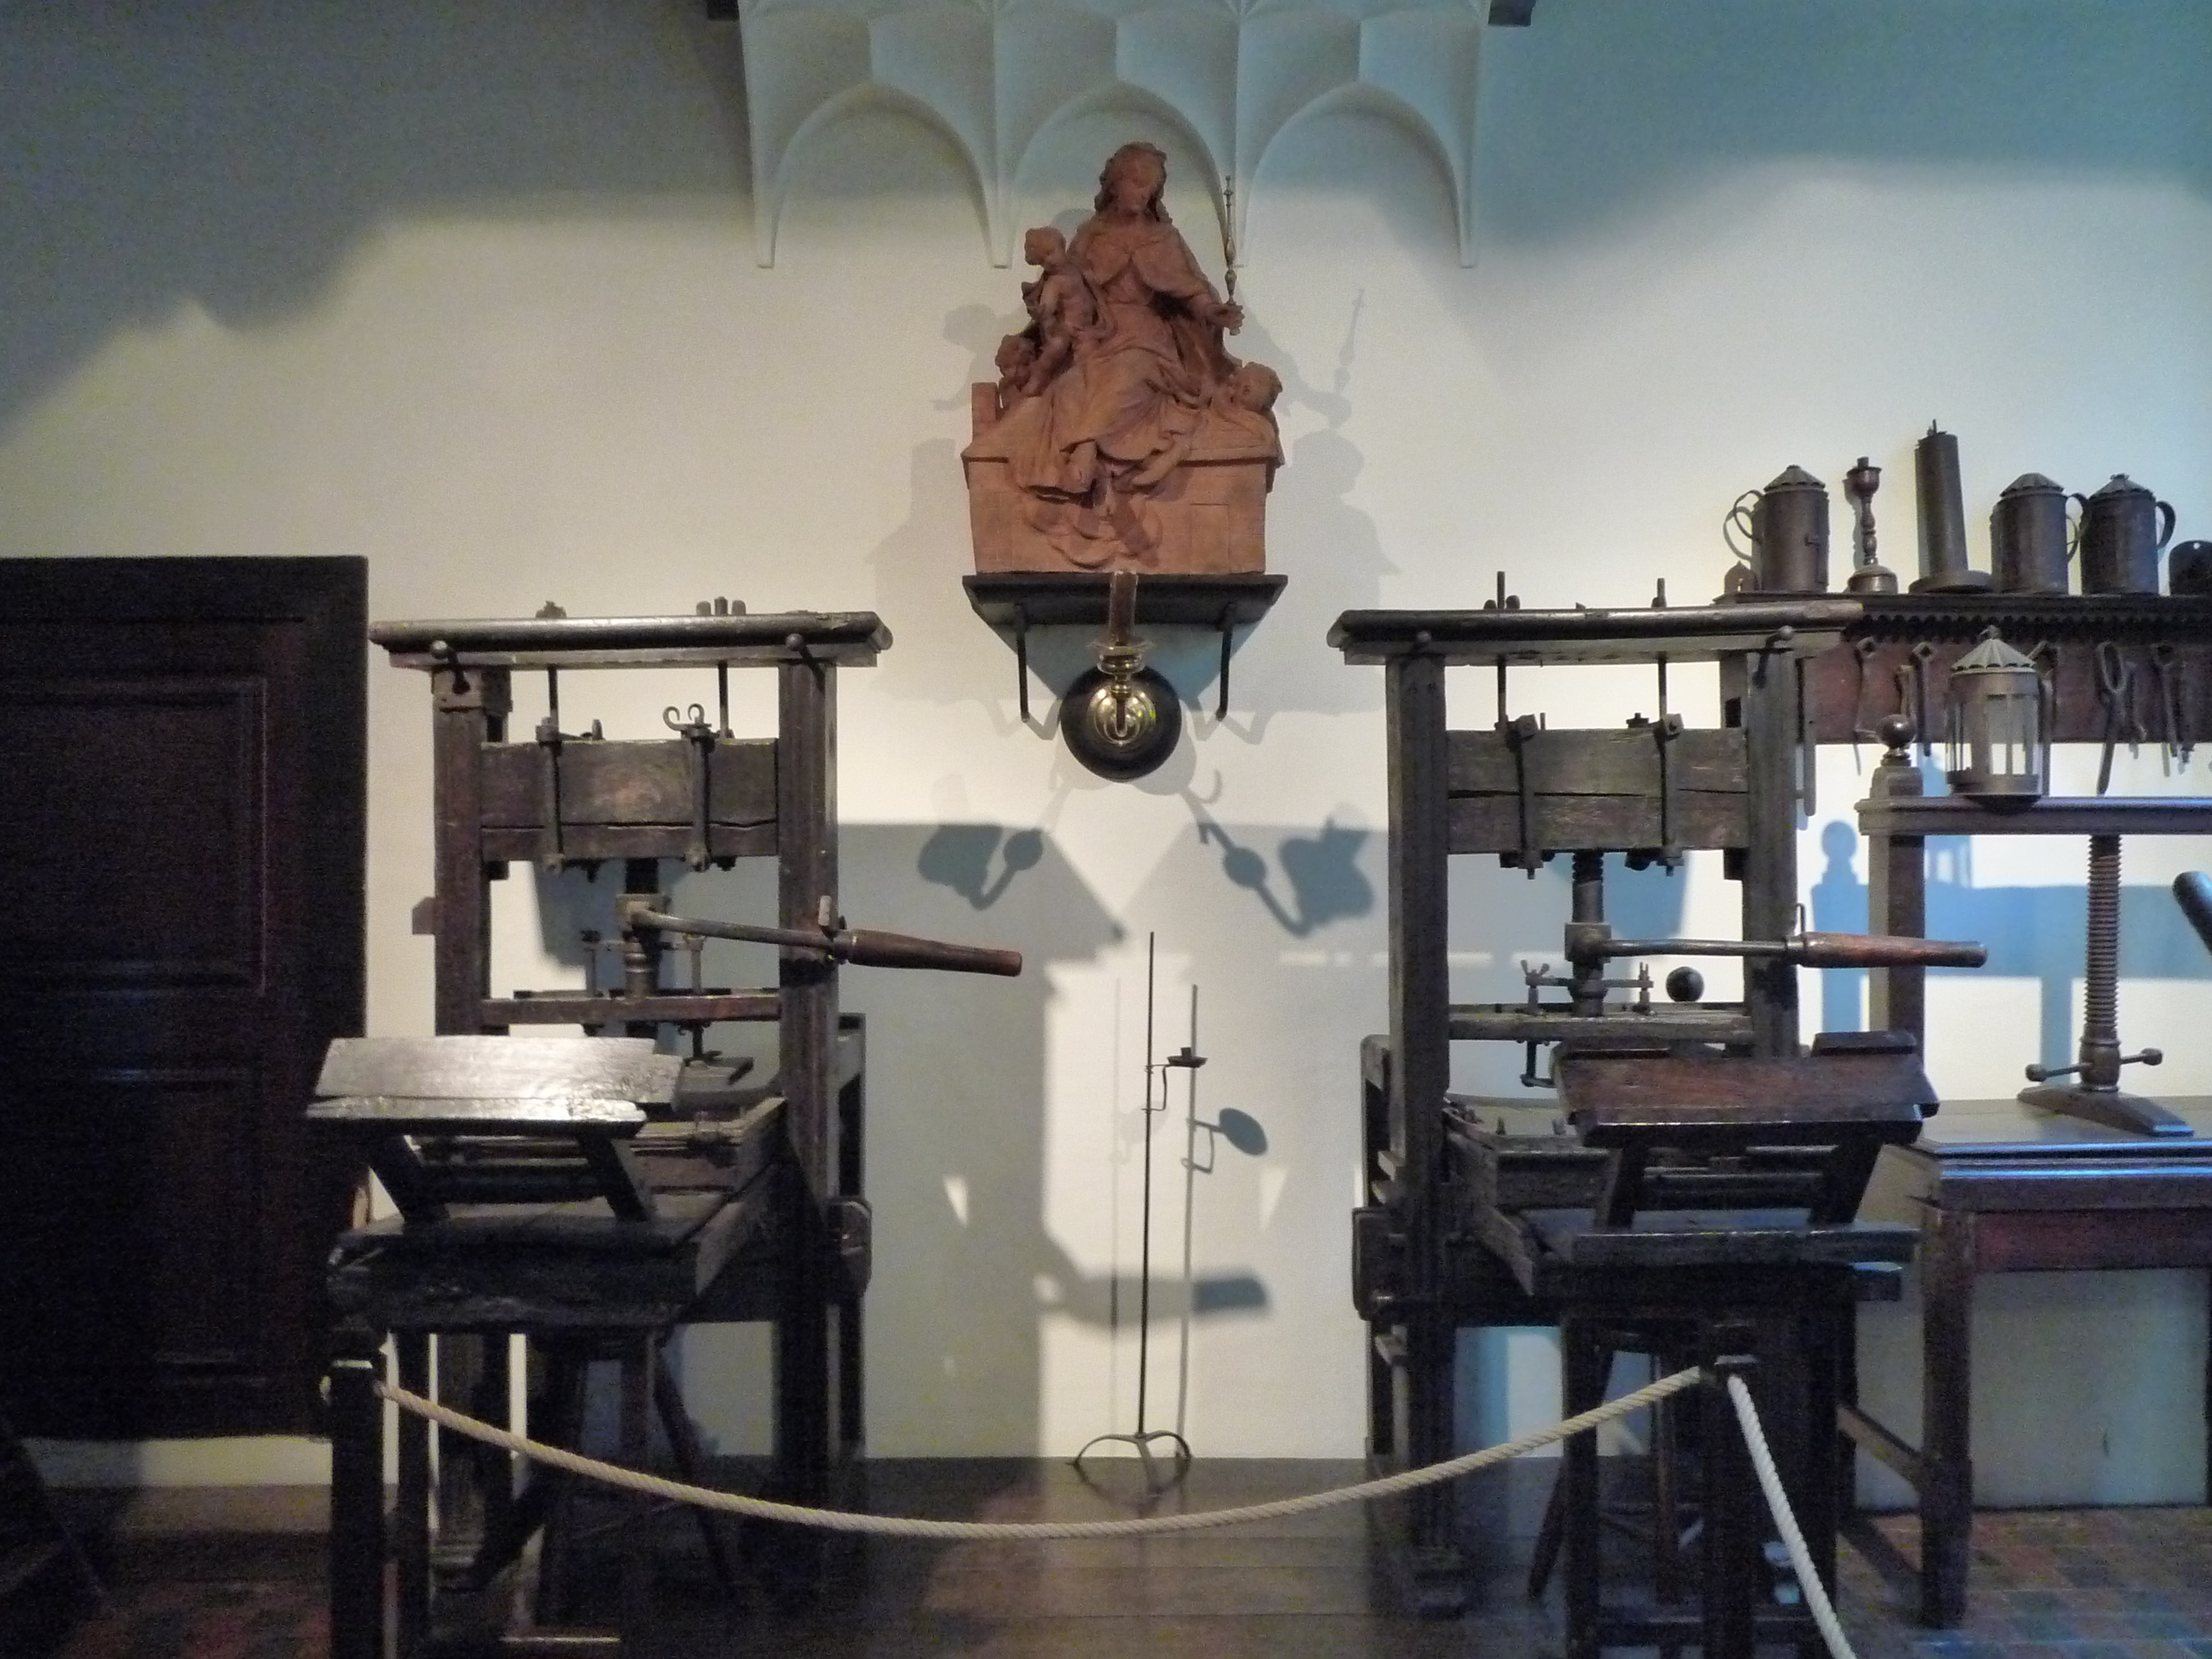 https://upload.wikimedia.org/wikipedia/commons/3/38/Museum_Plantin-Moretus_Printing_Press.jpg